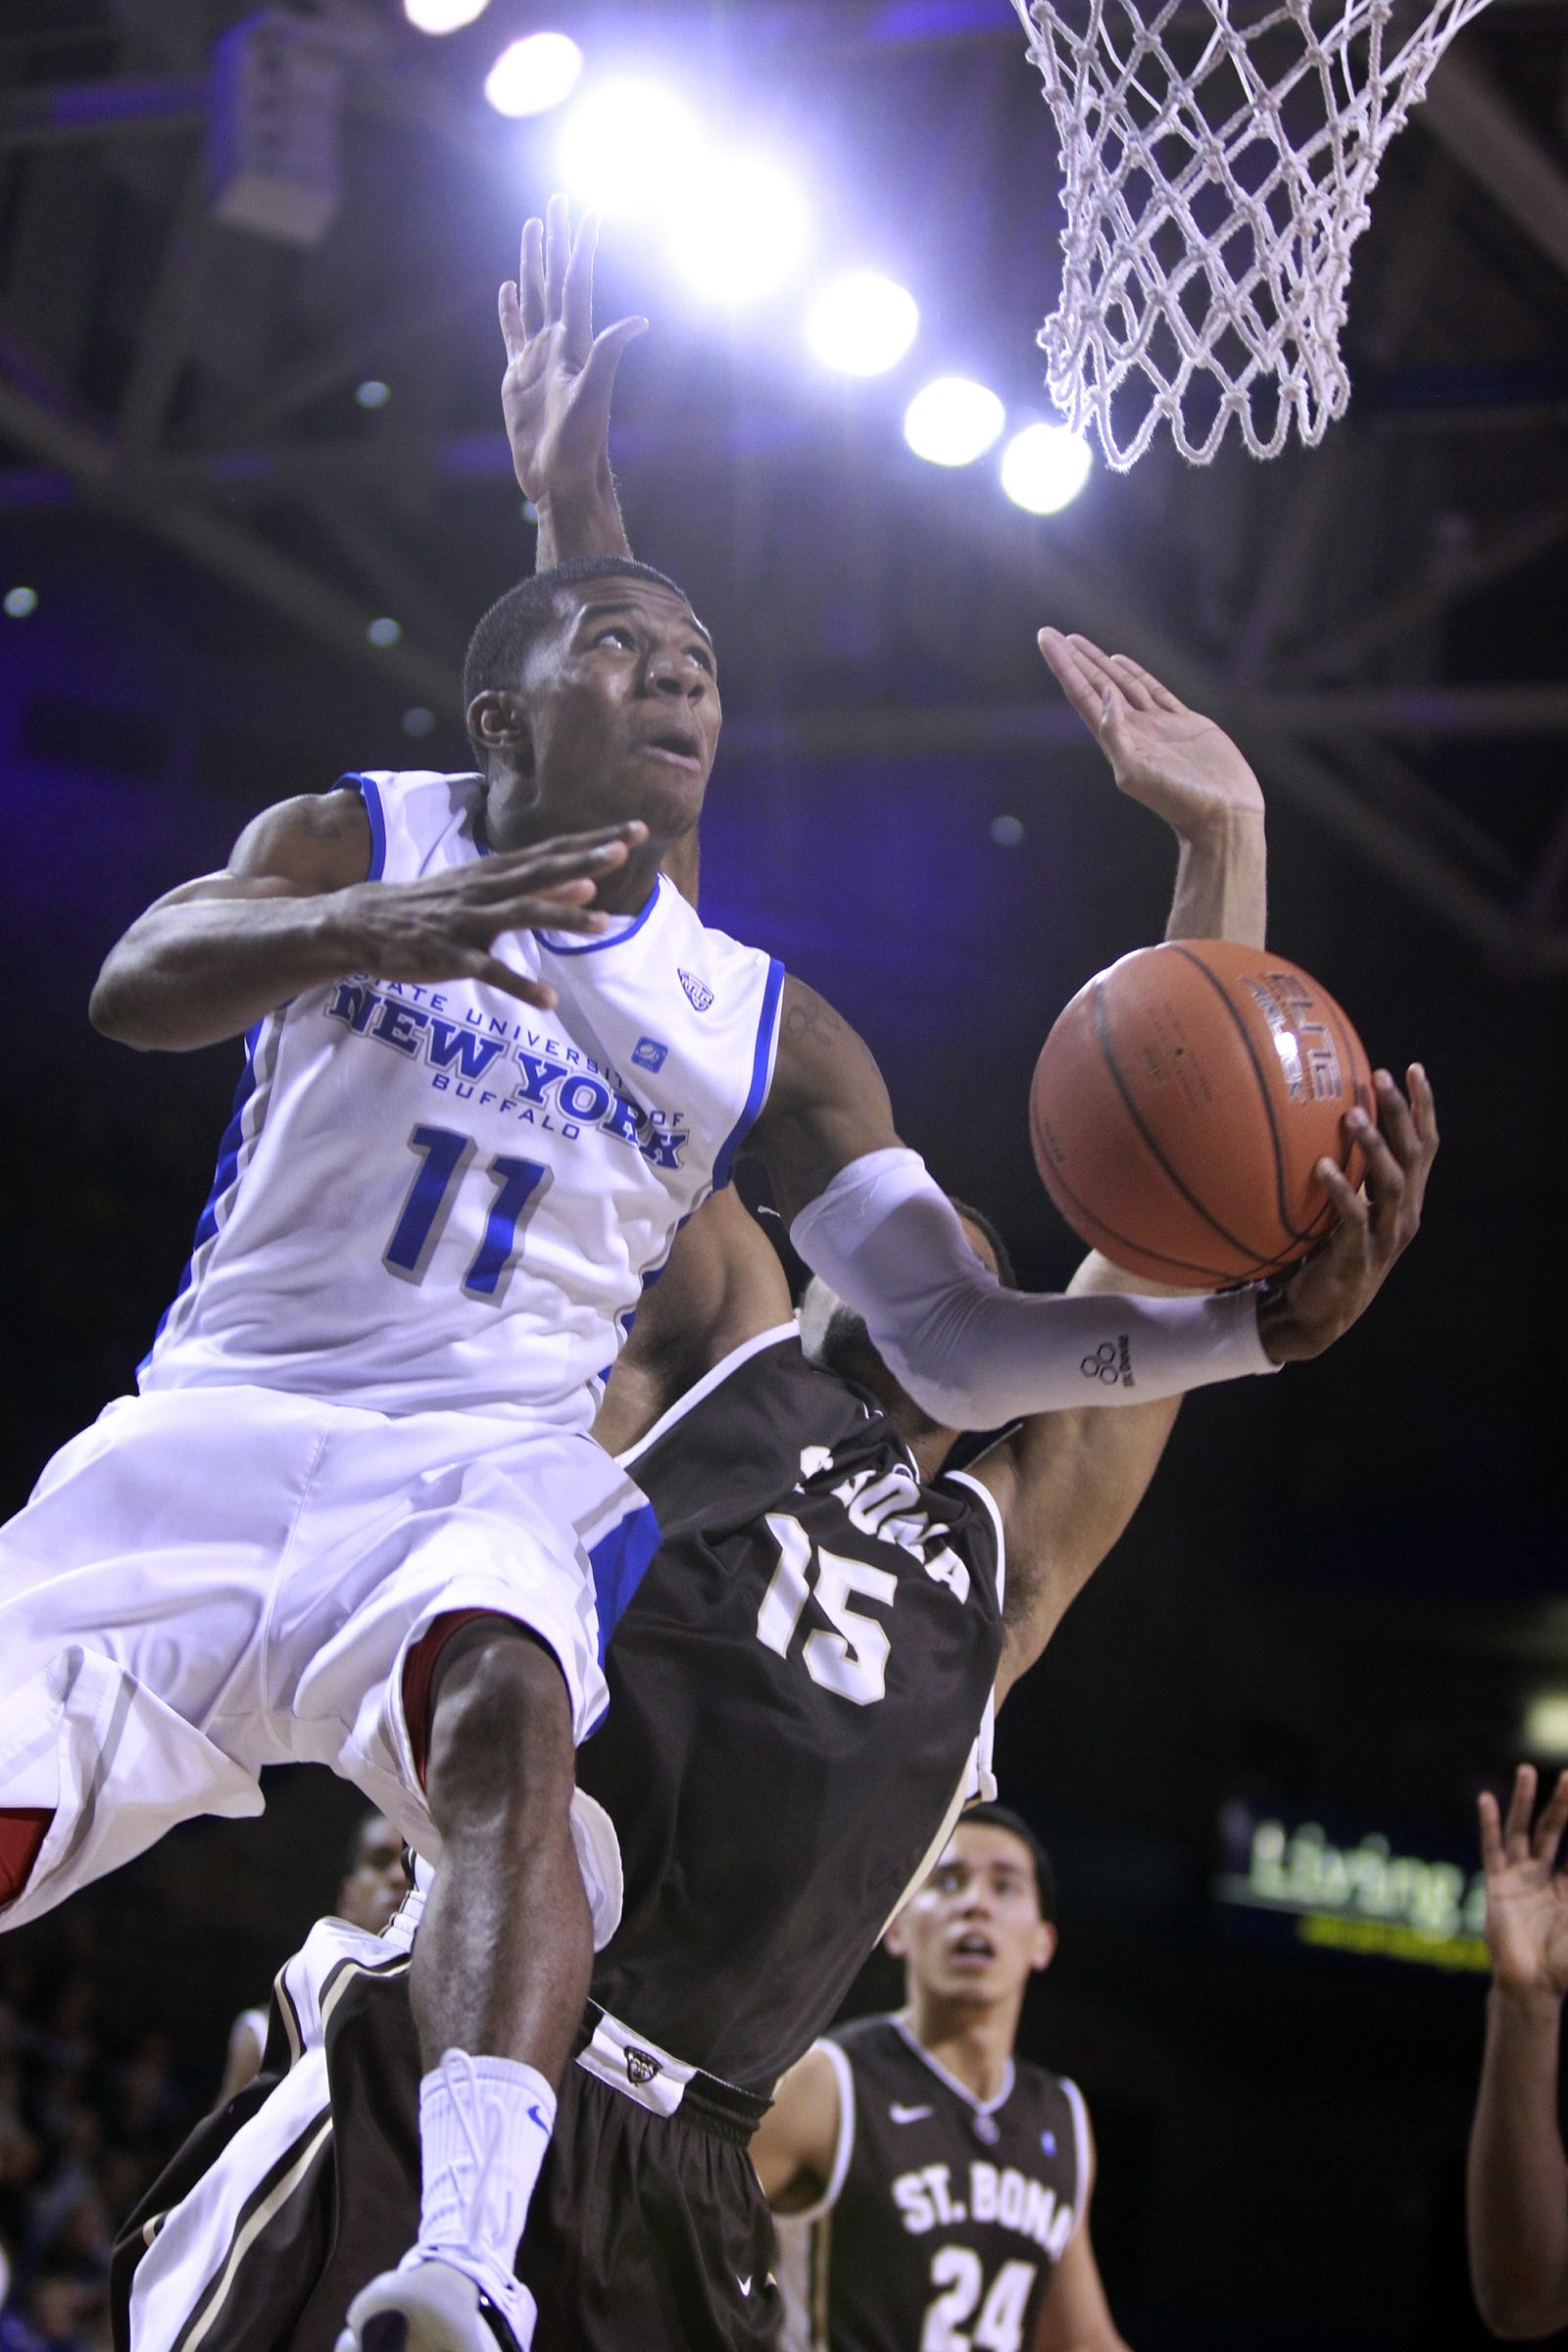 UB's Shannon Evans (11) drives past St. Bonaventure's Chris Dees in the second half. Evans had 15 of his 17 points in the final 20 minutes for the Bulls.